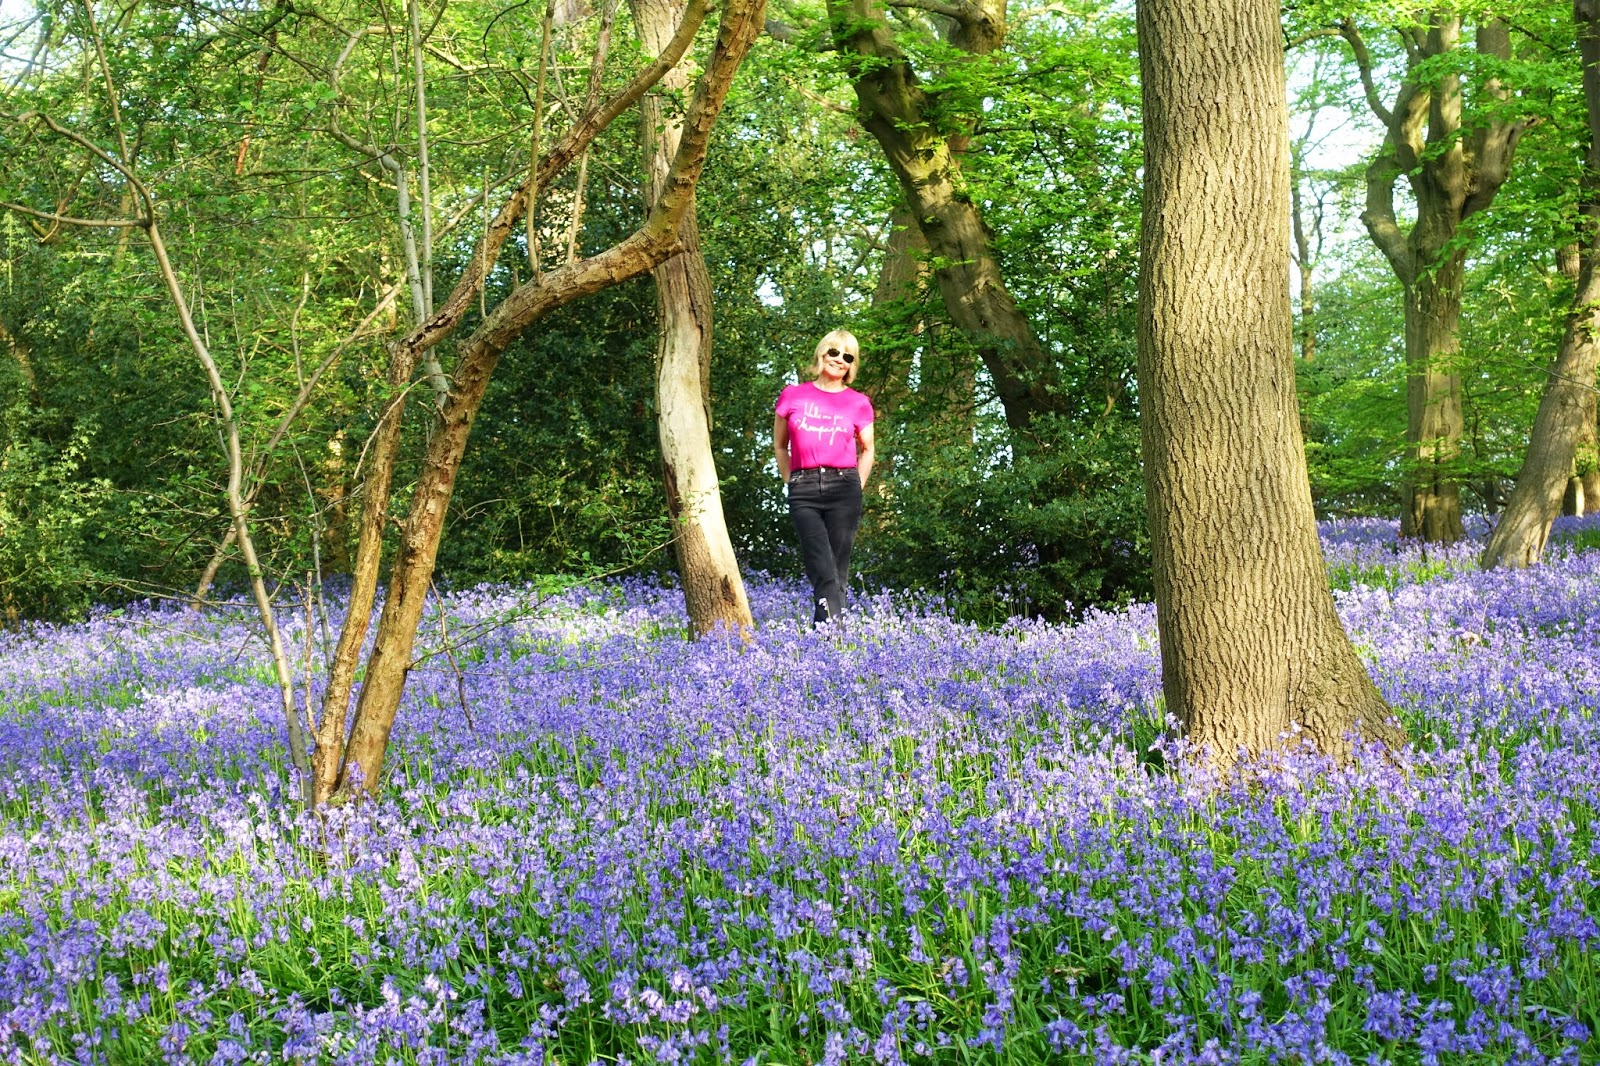 Is This Mutton? blogger Gail Hanlon on the annual bluebell wood walk